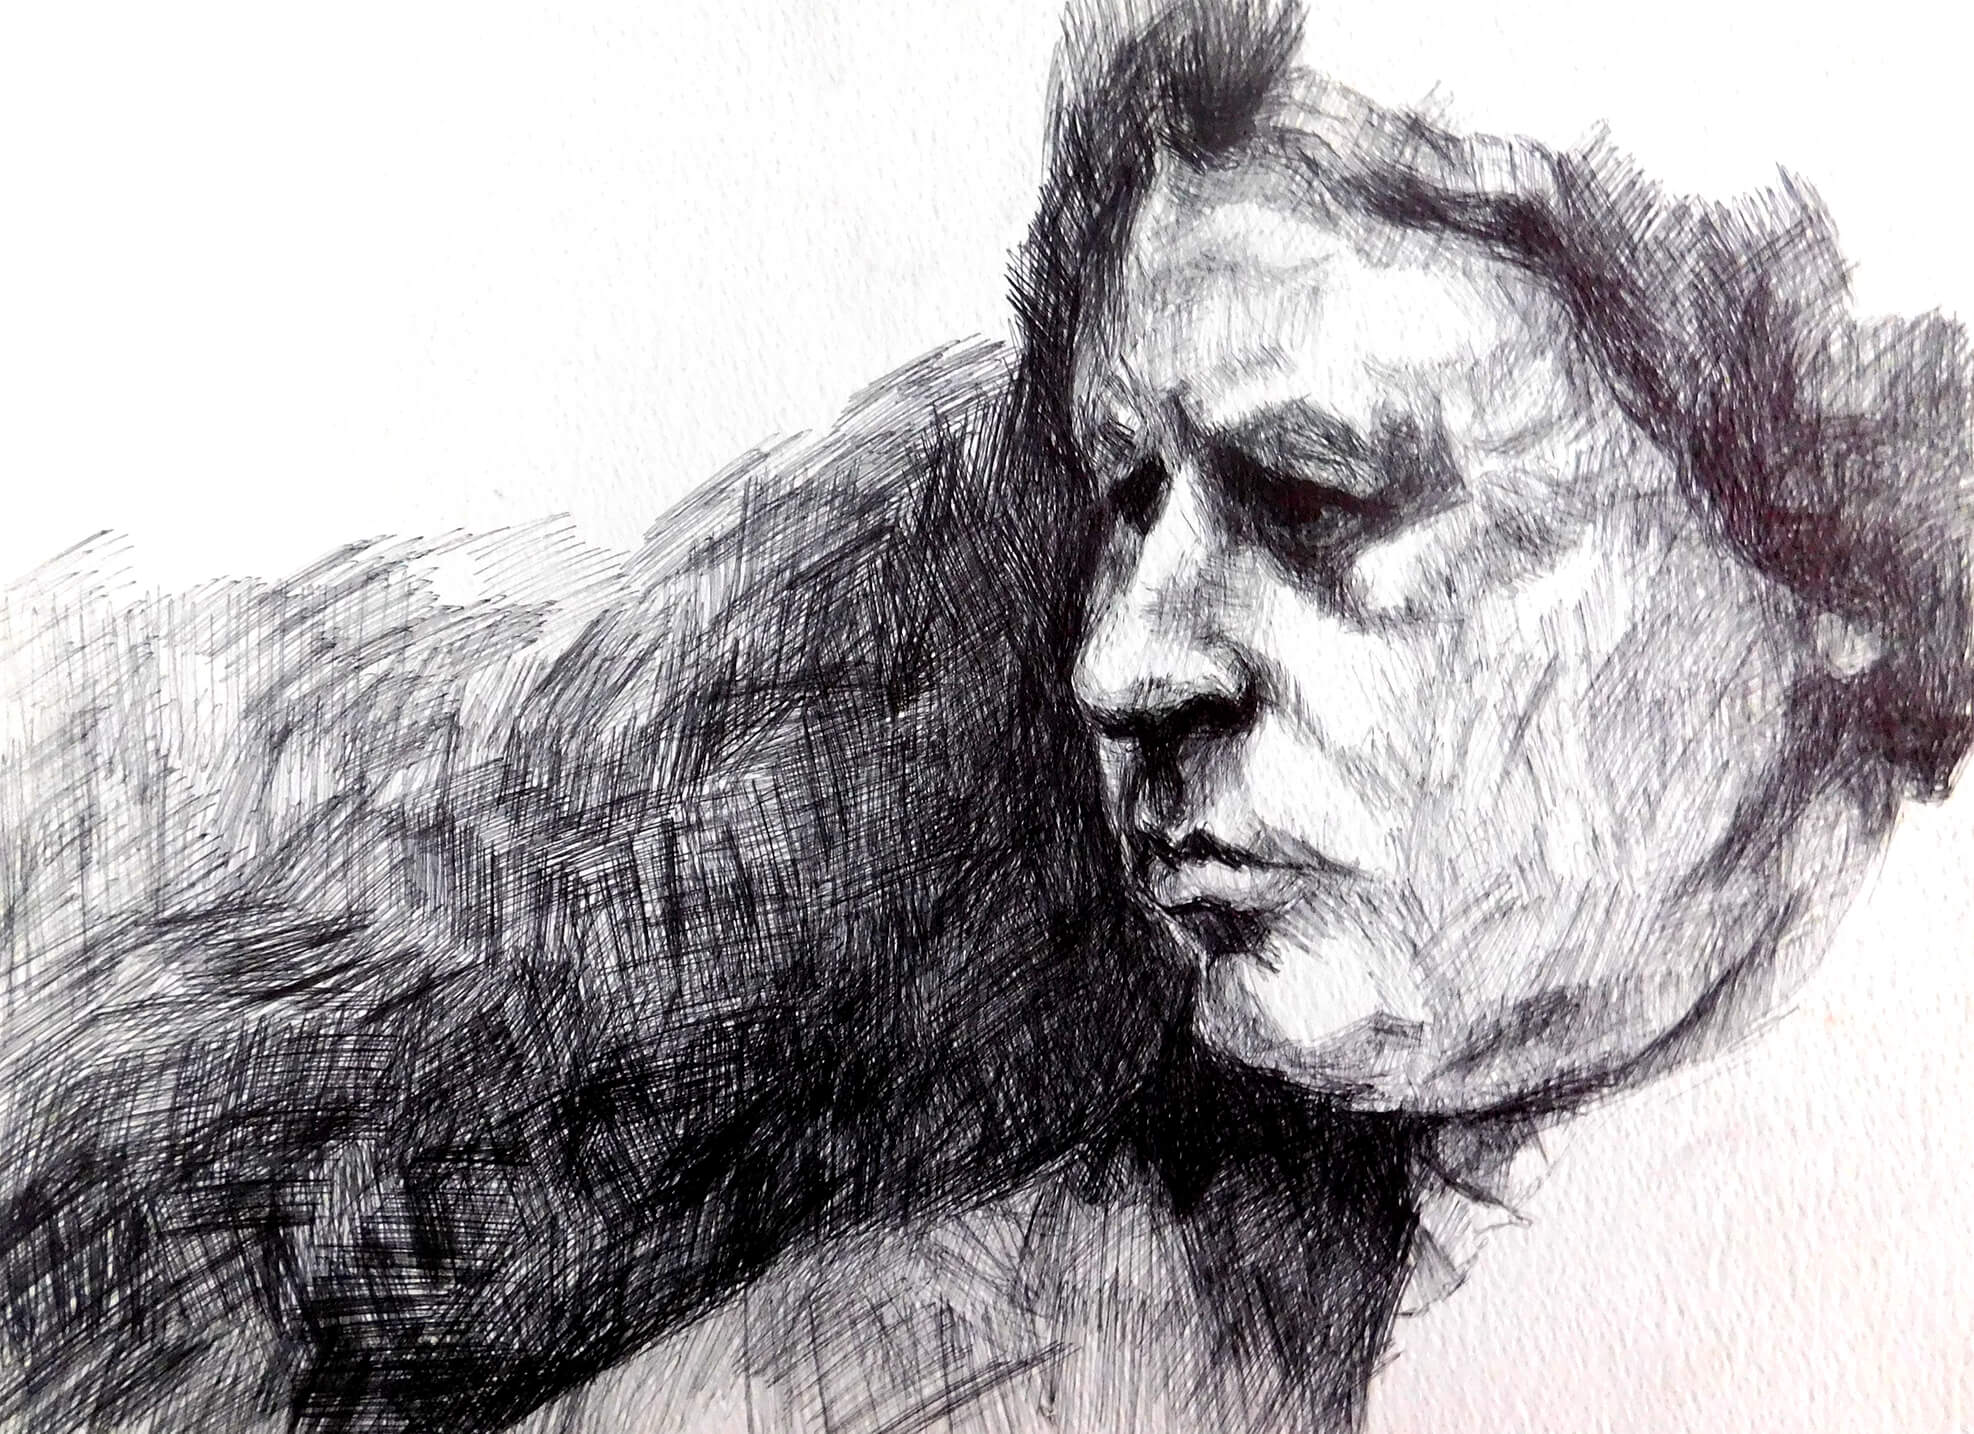 Title: Study of a Portrait 27; Ink on paper; 24 x 32 x 0.1 cm; 2005